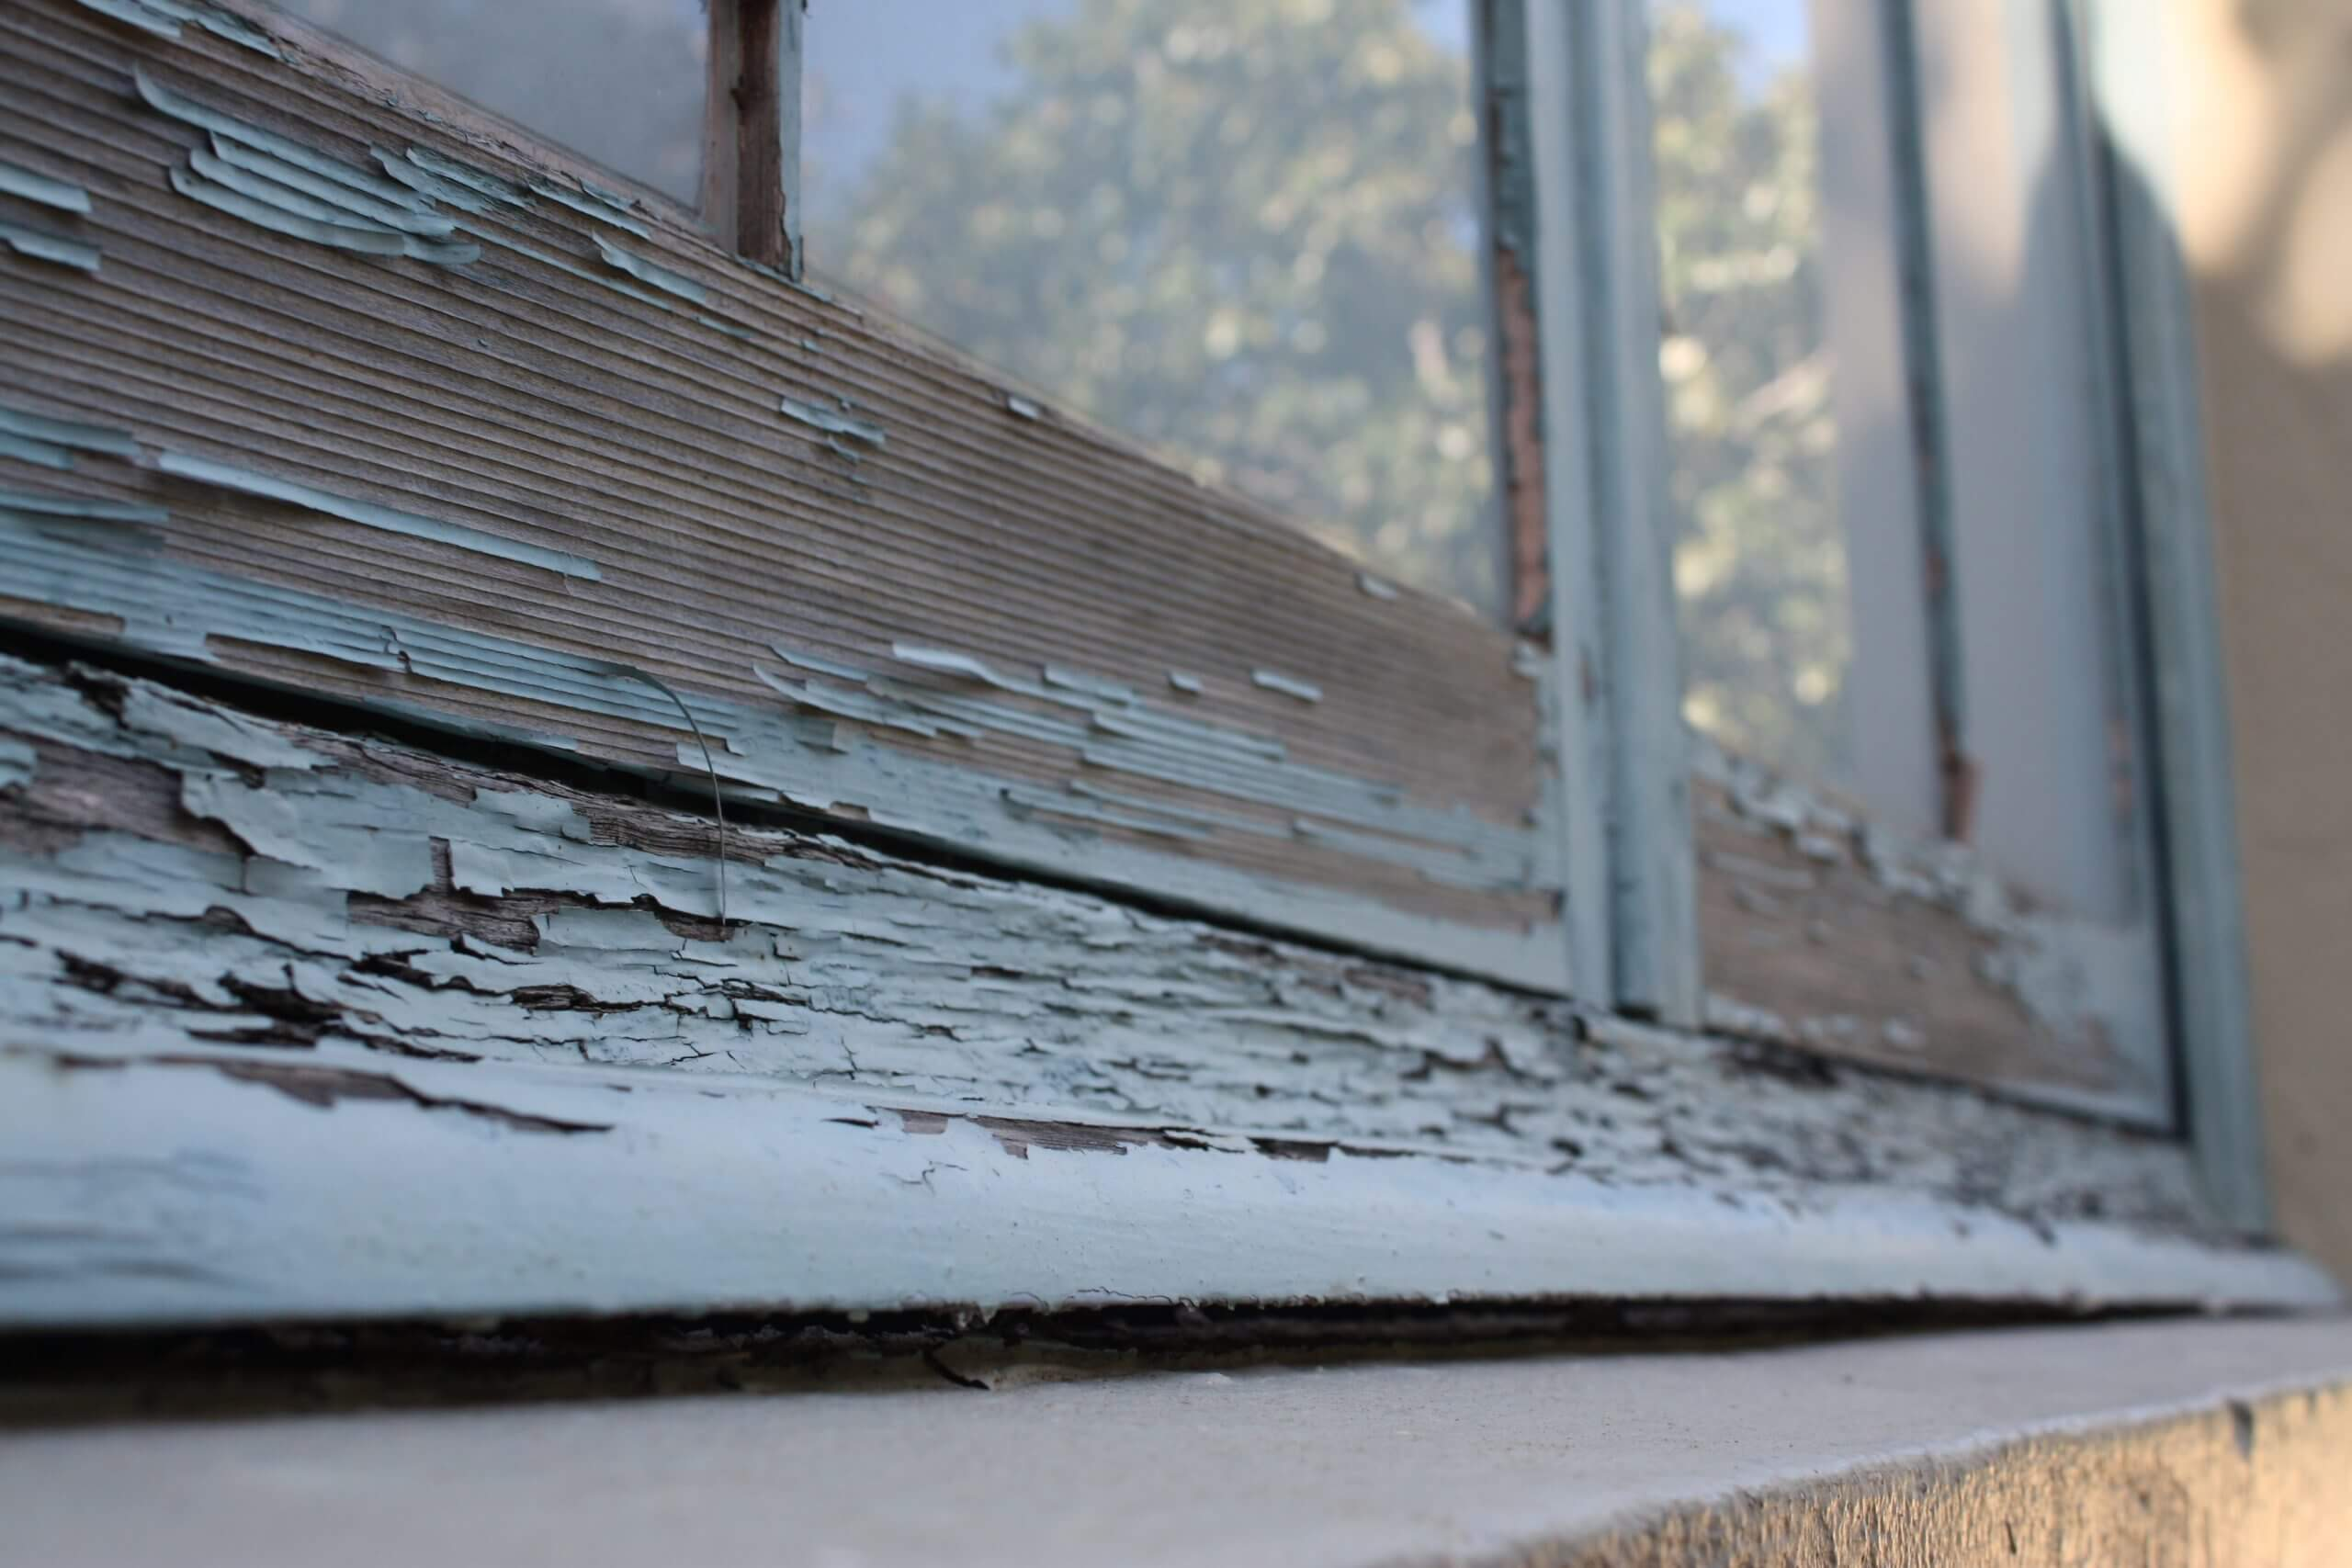 Peeling Paint On The Window - Building Repair And Maintenance - Remedial Building Services